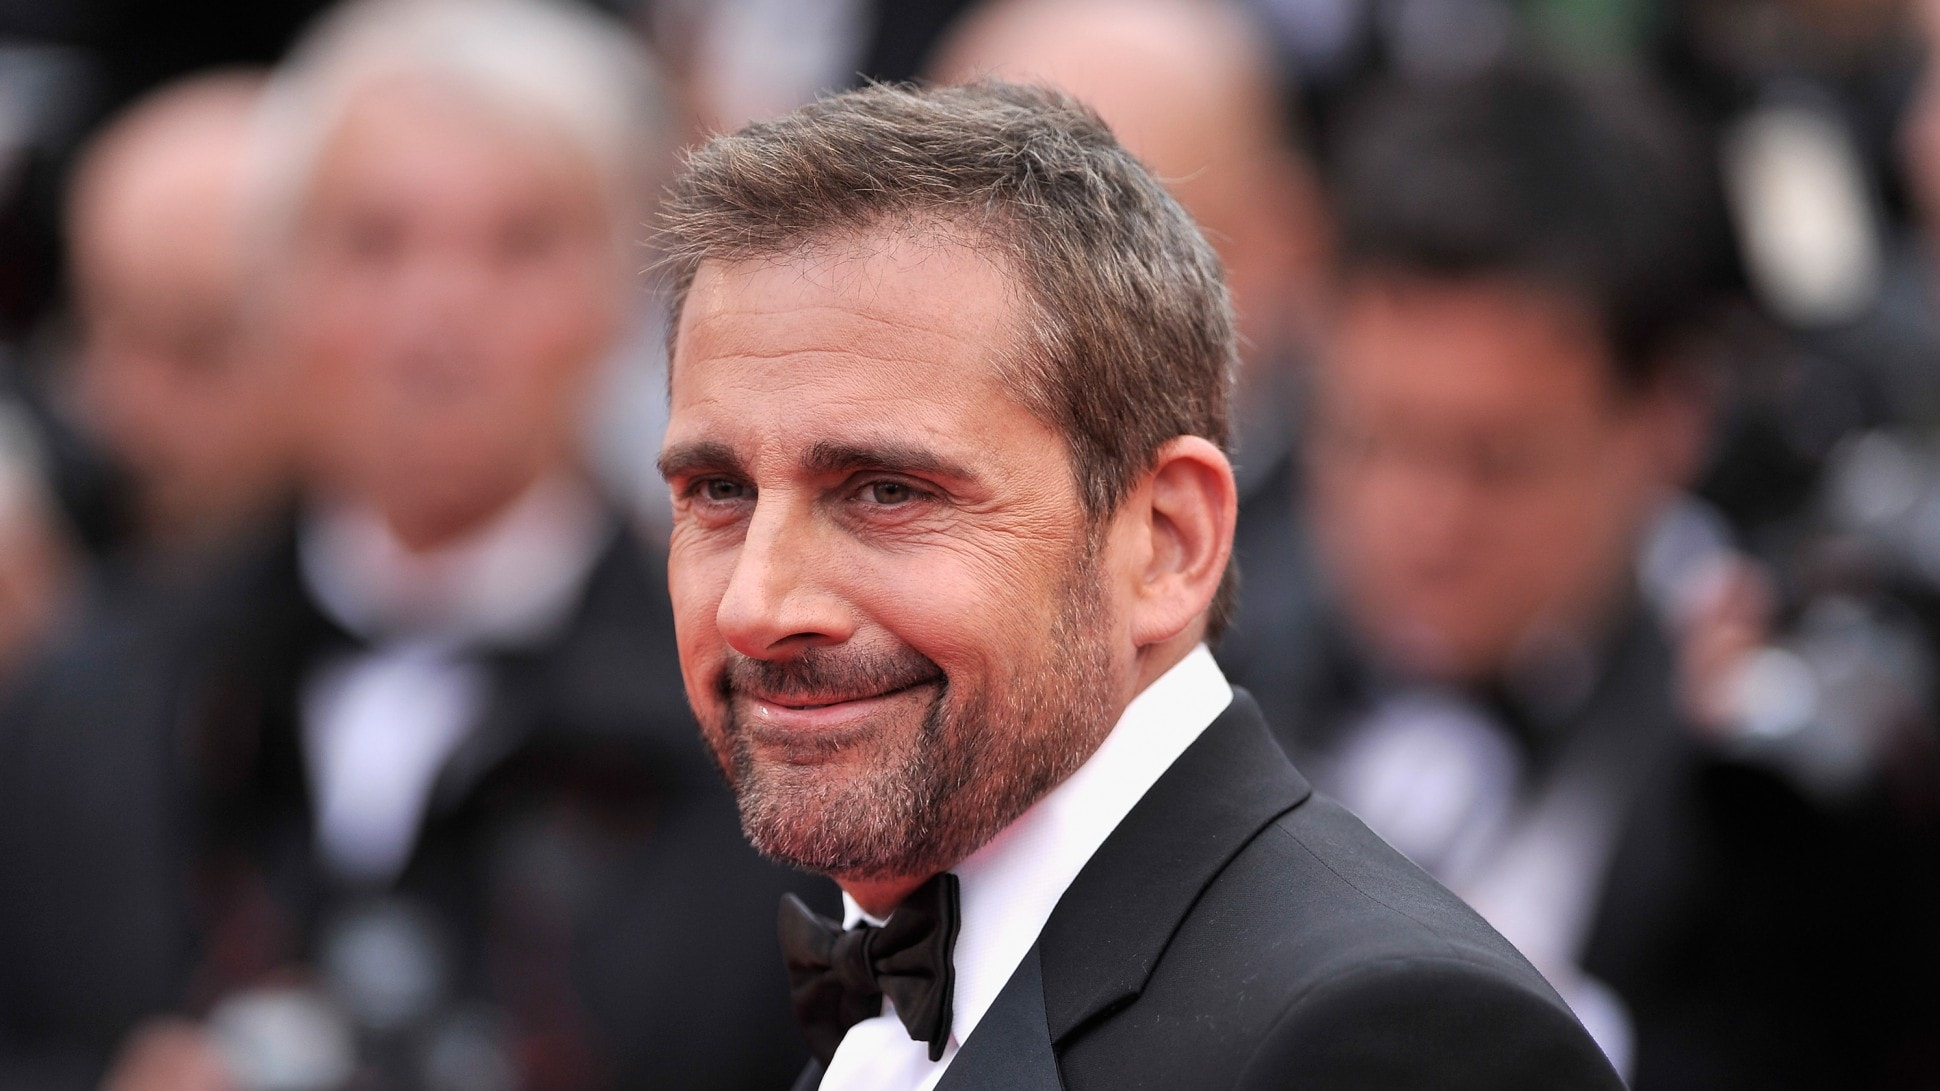 Steve Carell widescreen wallpapers